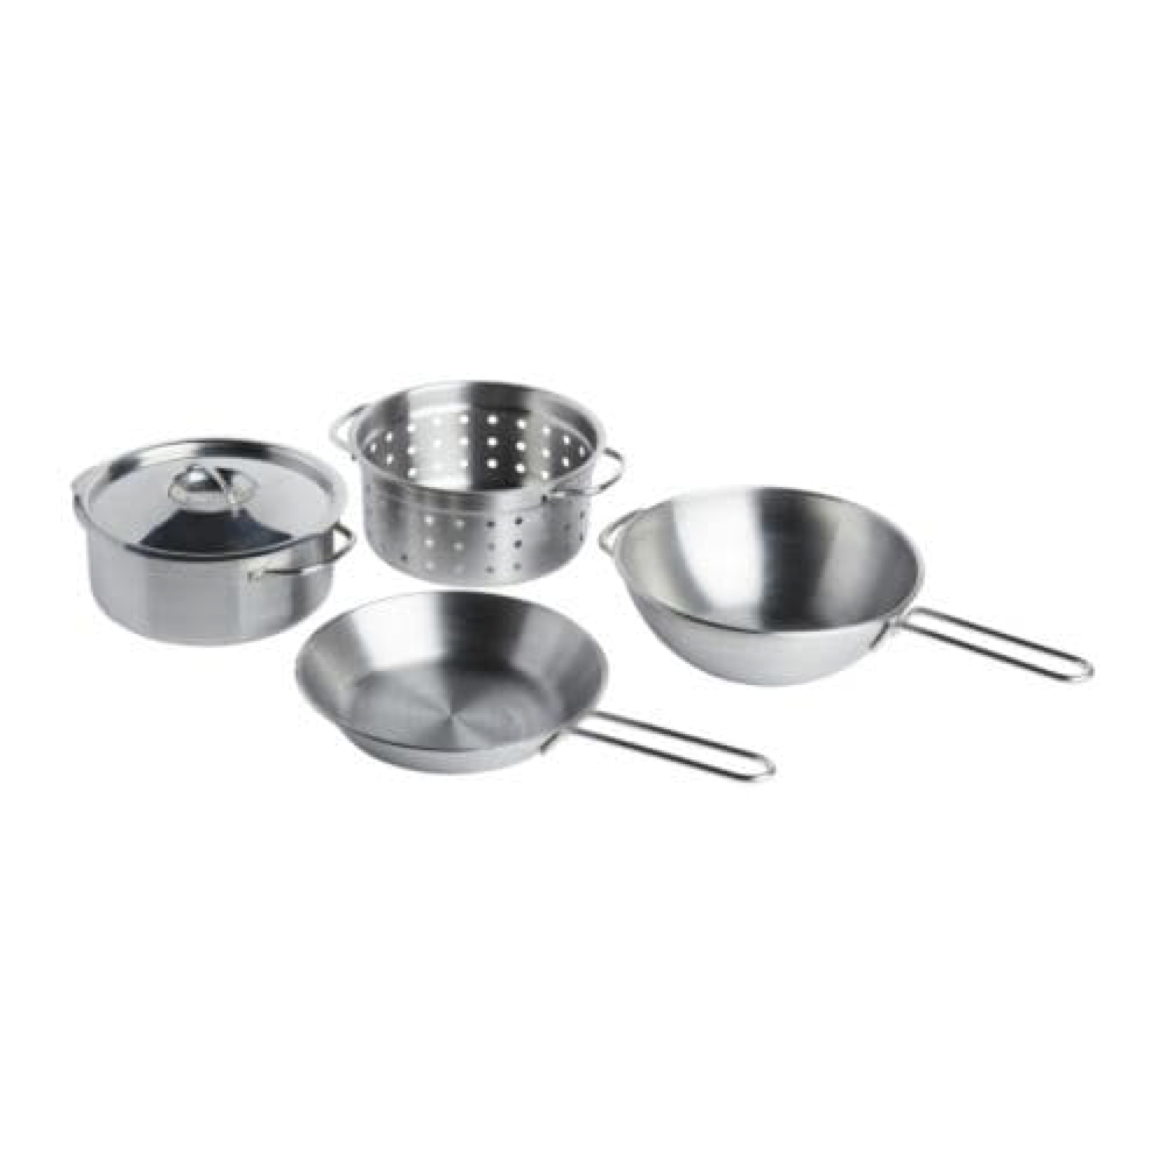 IKEA Duktig 5-Piece Toy Cookware Set Stainless Stainless Stainless Steel color 001.301.67 1d28af